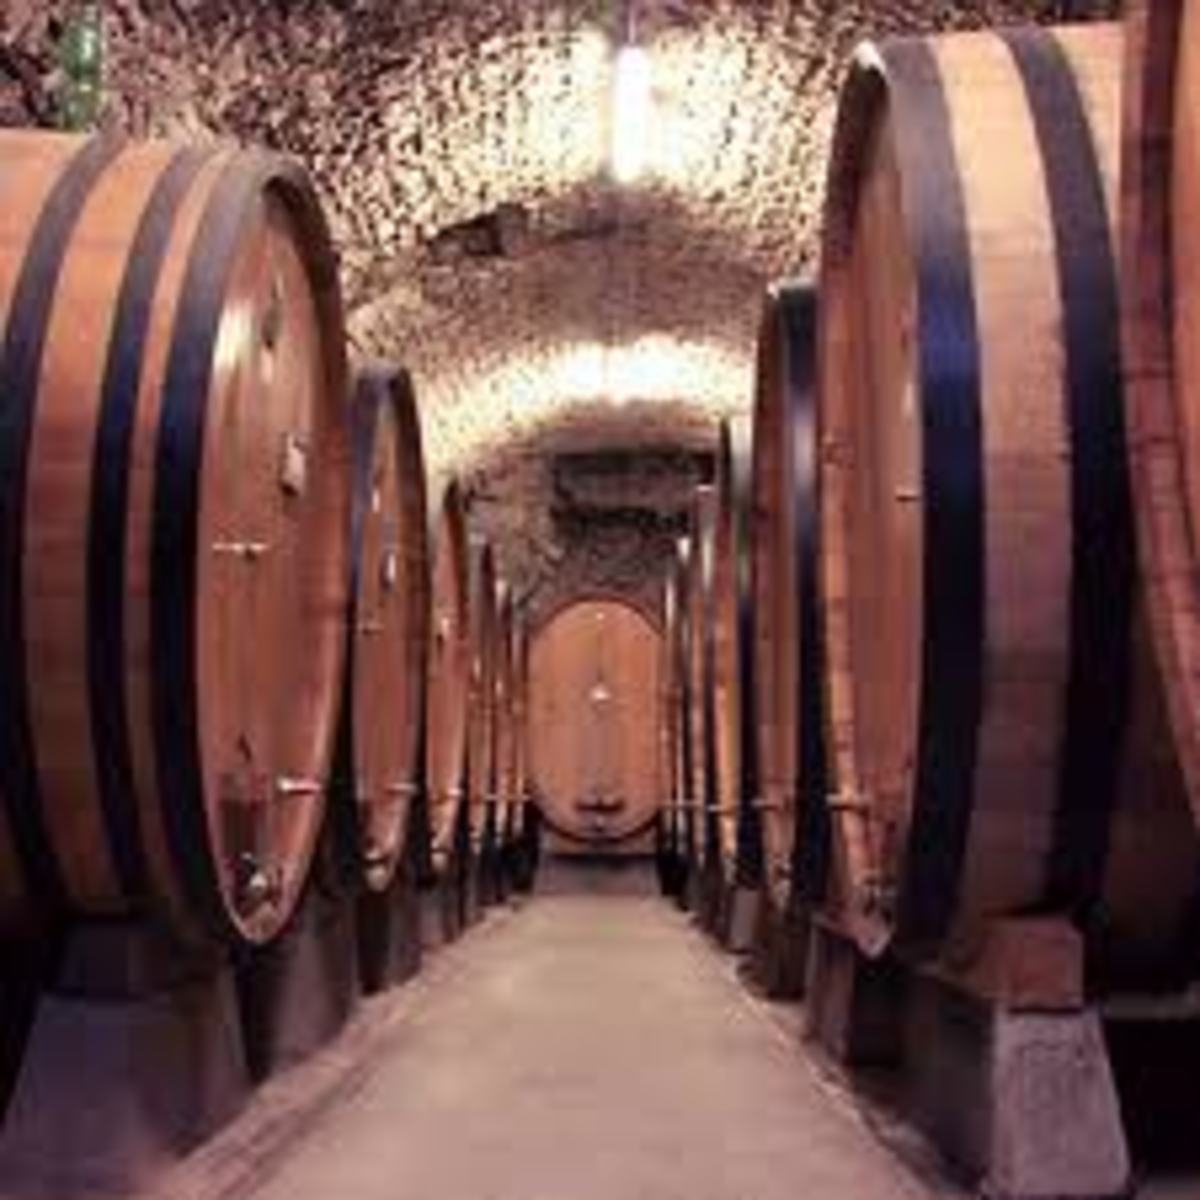 Typical wine cellar or cave with two rows of wine casks.